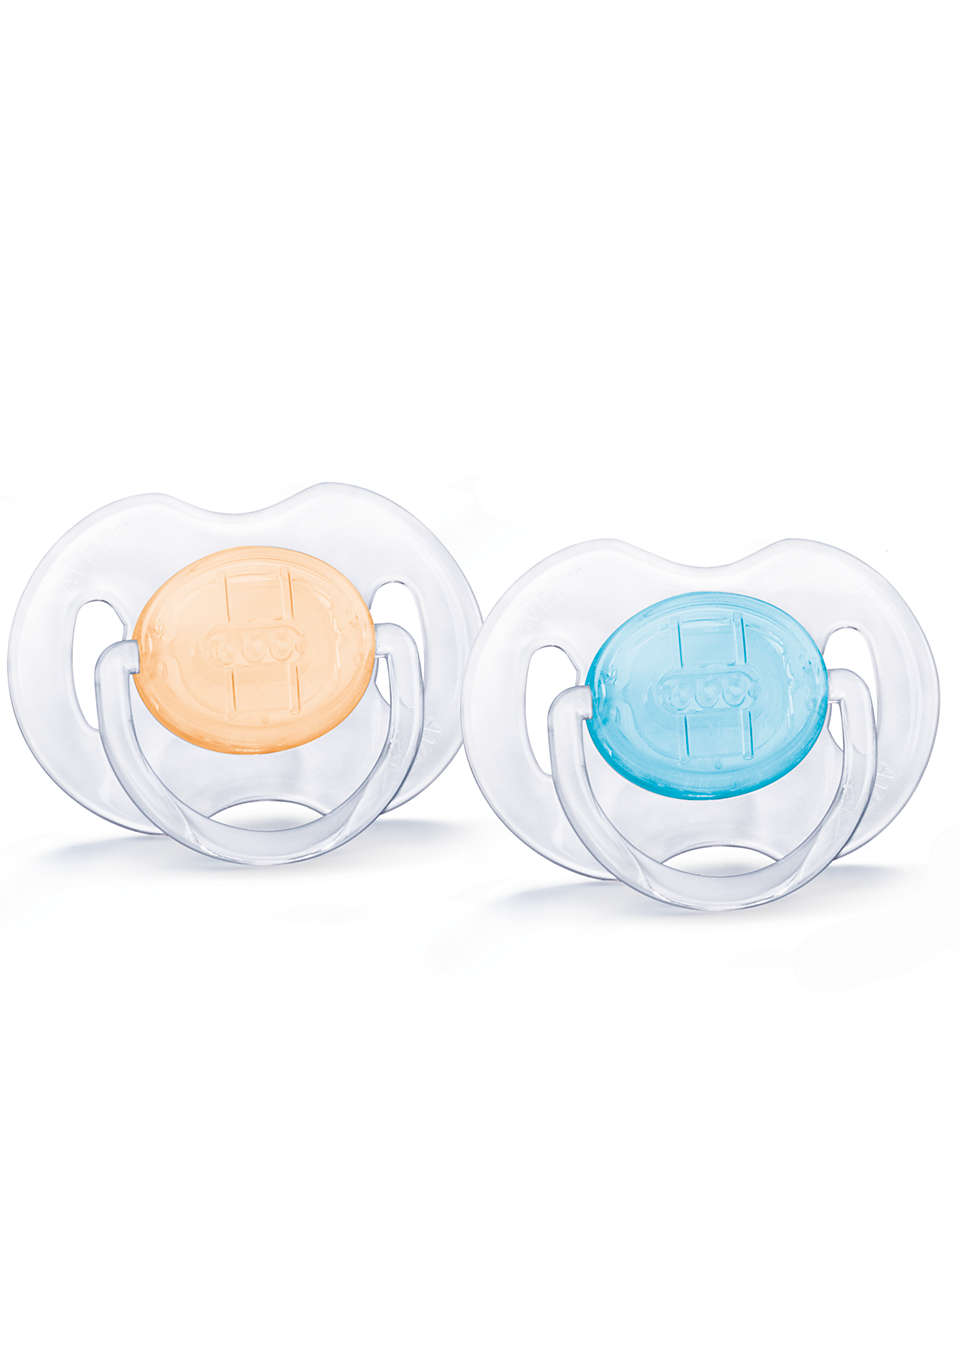 Designed for your baby's everyday comfort needs